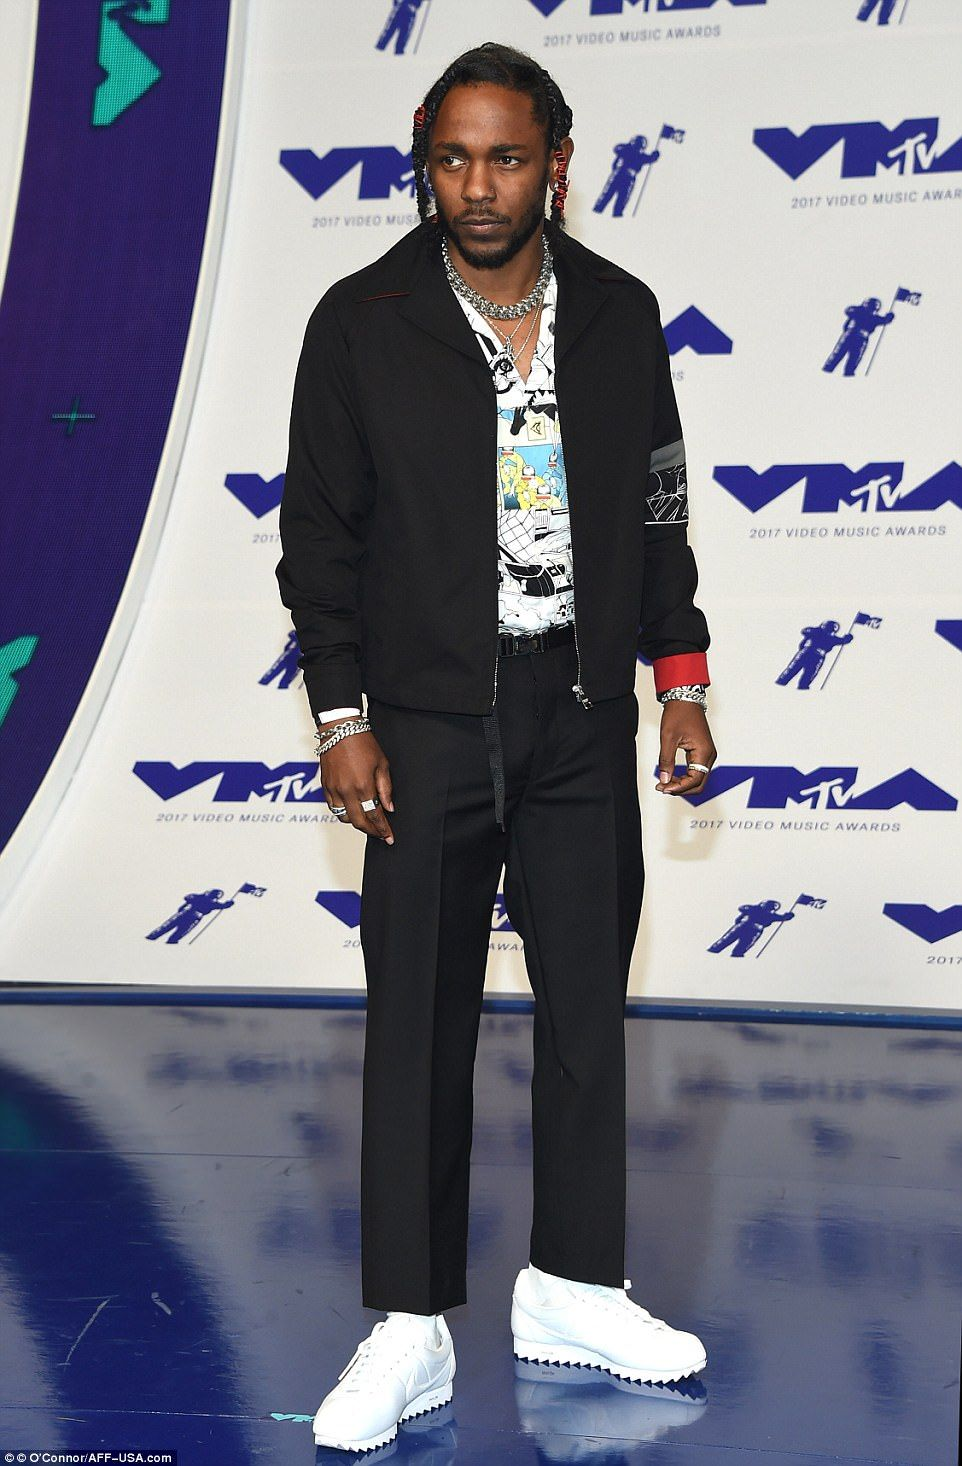 online store 32900 ecf25 MTV Video Music Awards arrivals | streetwear | Nike cortez ...